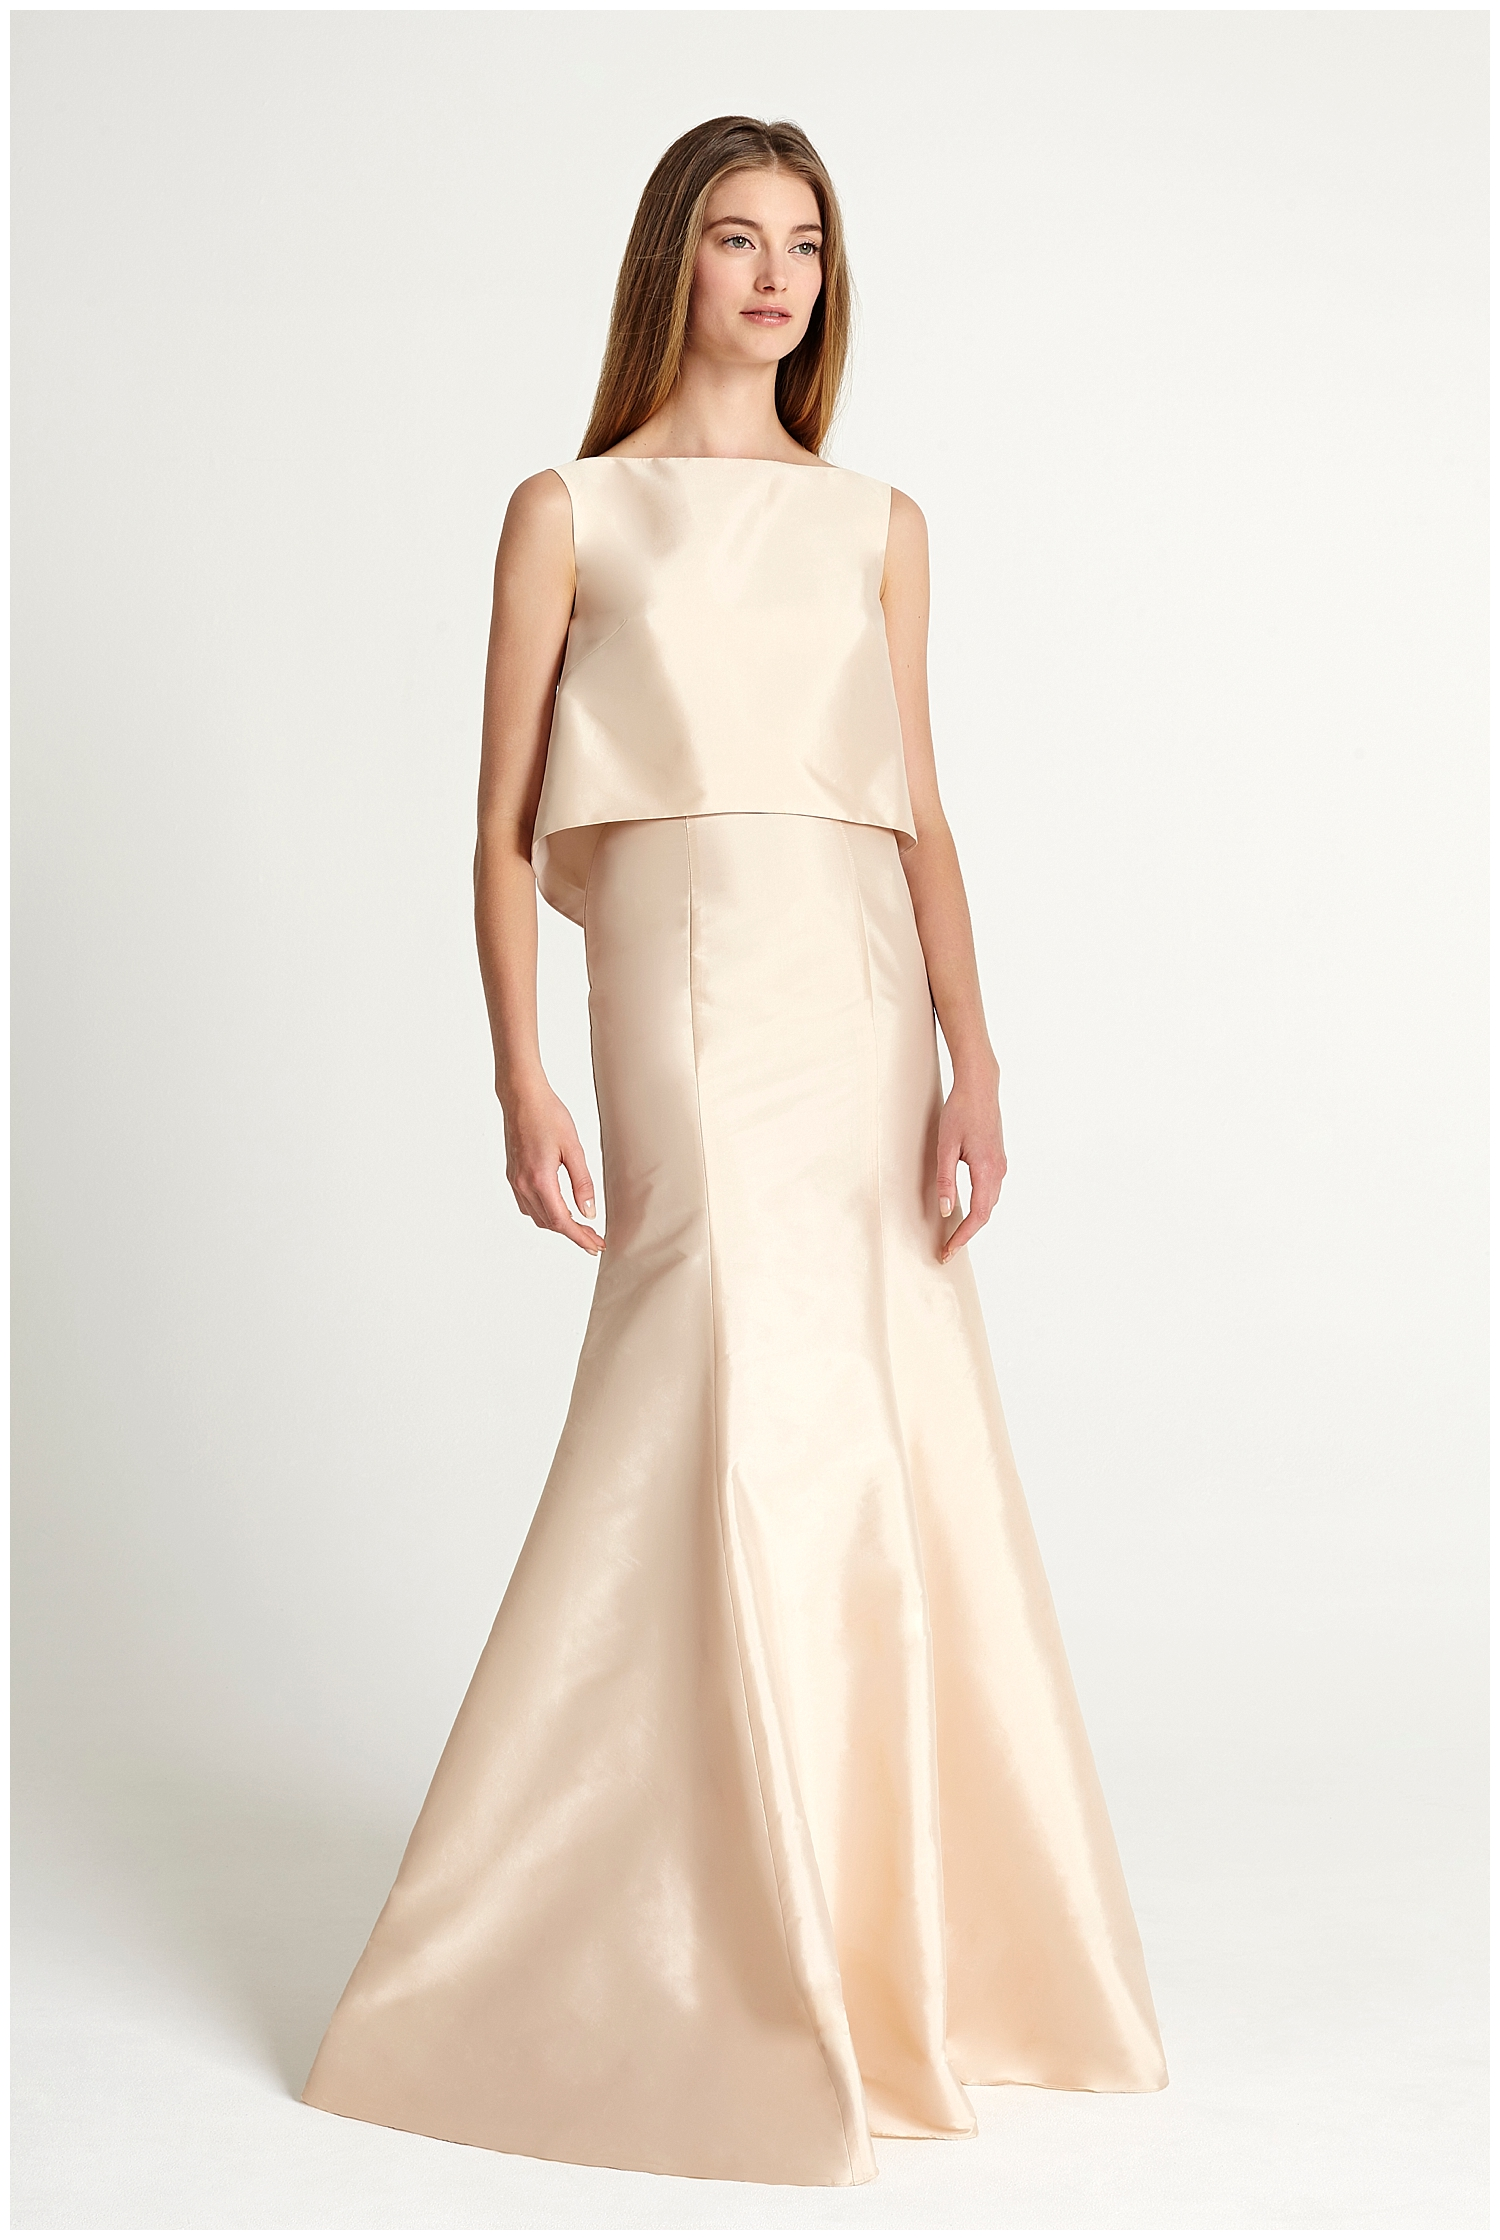 Five Reasons for Choosing Bridesmaid Separates | Bella Bridesmaid Madison